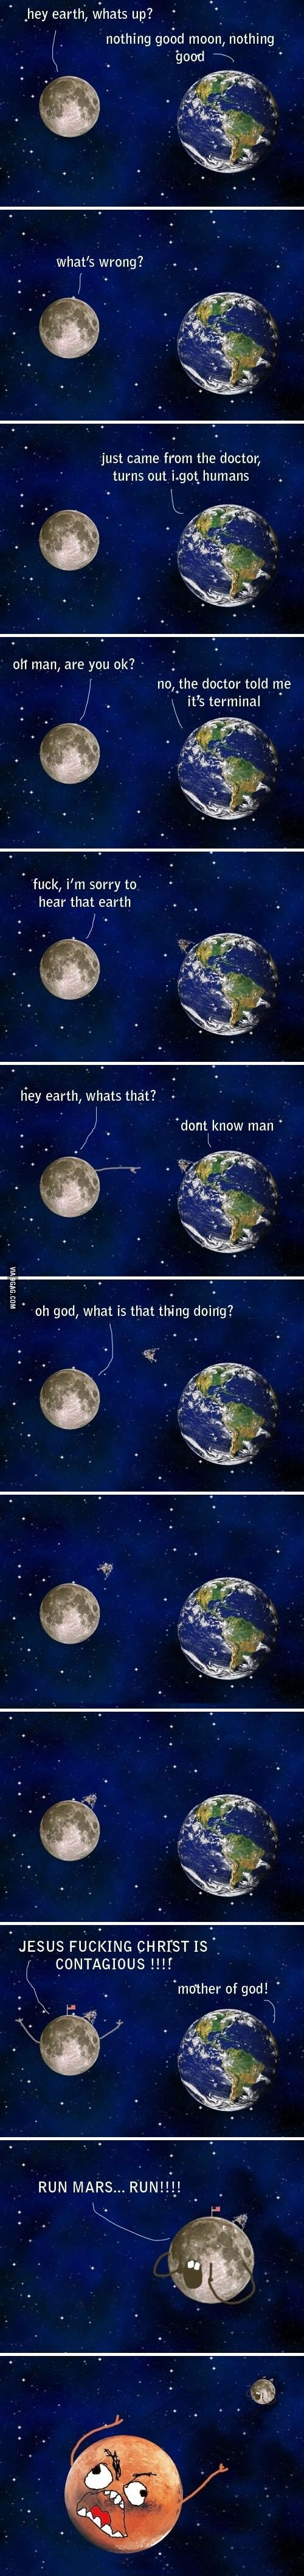 My first thought when I heard that NASA is accepting applications from companies to mine the moon.